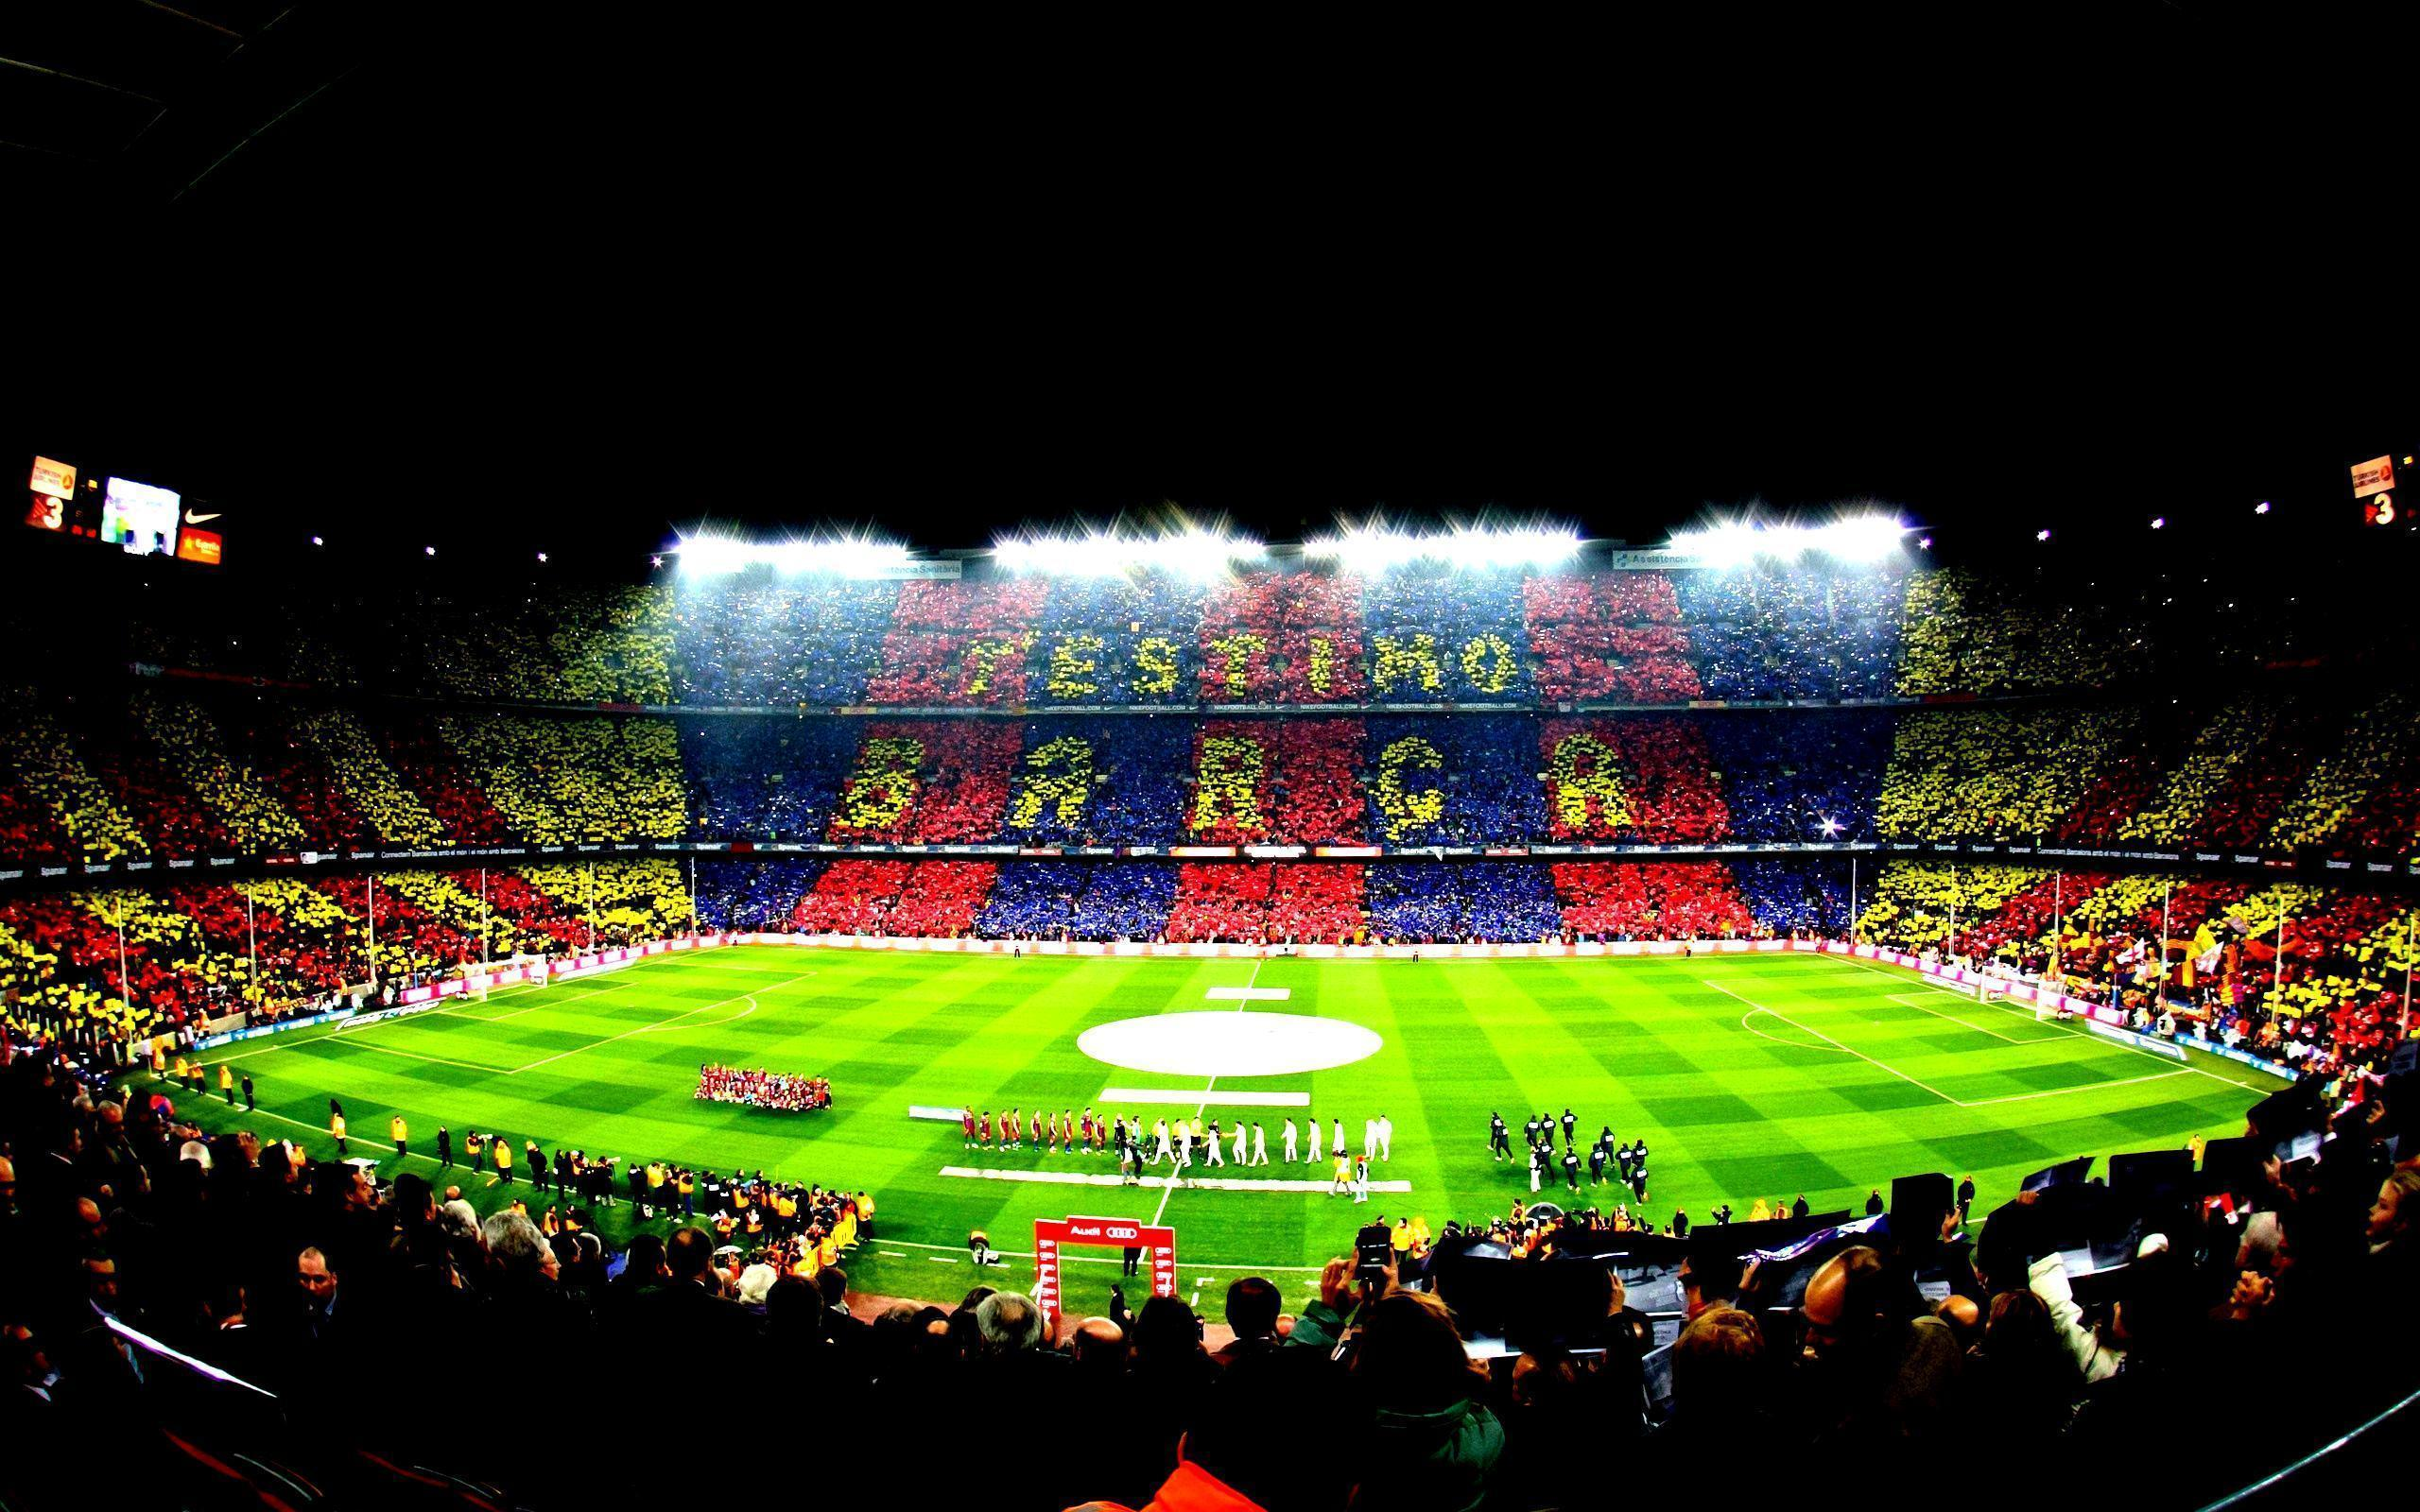 Camp nou hd wallpapers wallpaper cave - Camp nou 4k wallpaper ...